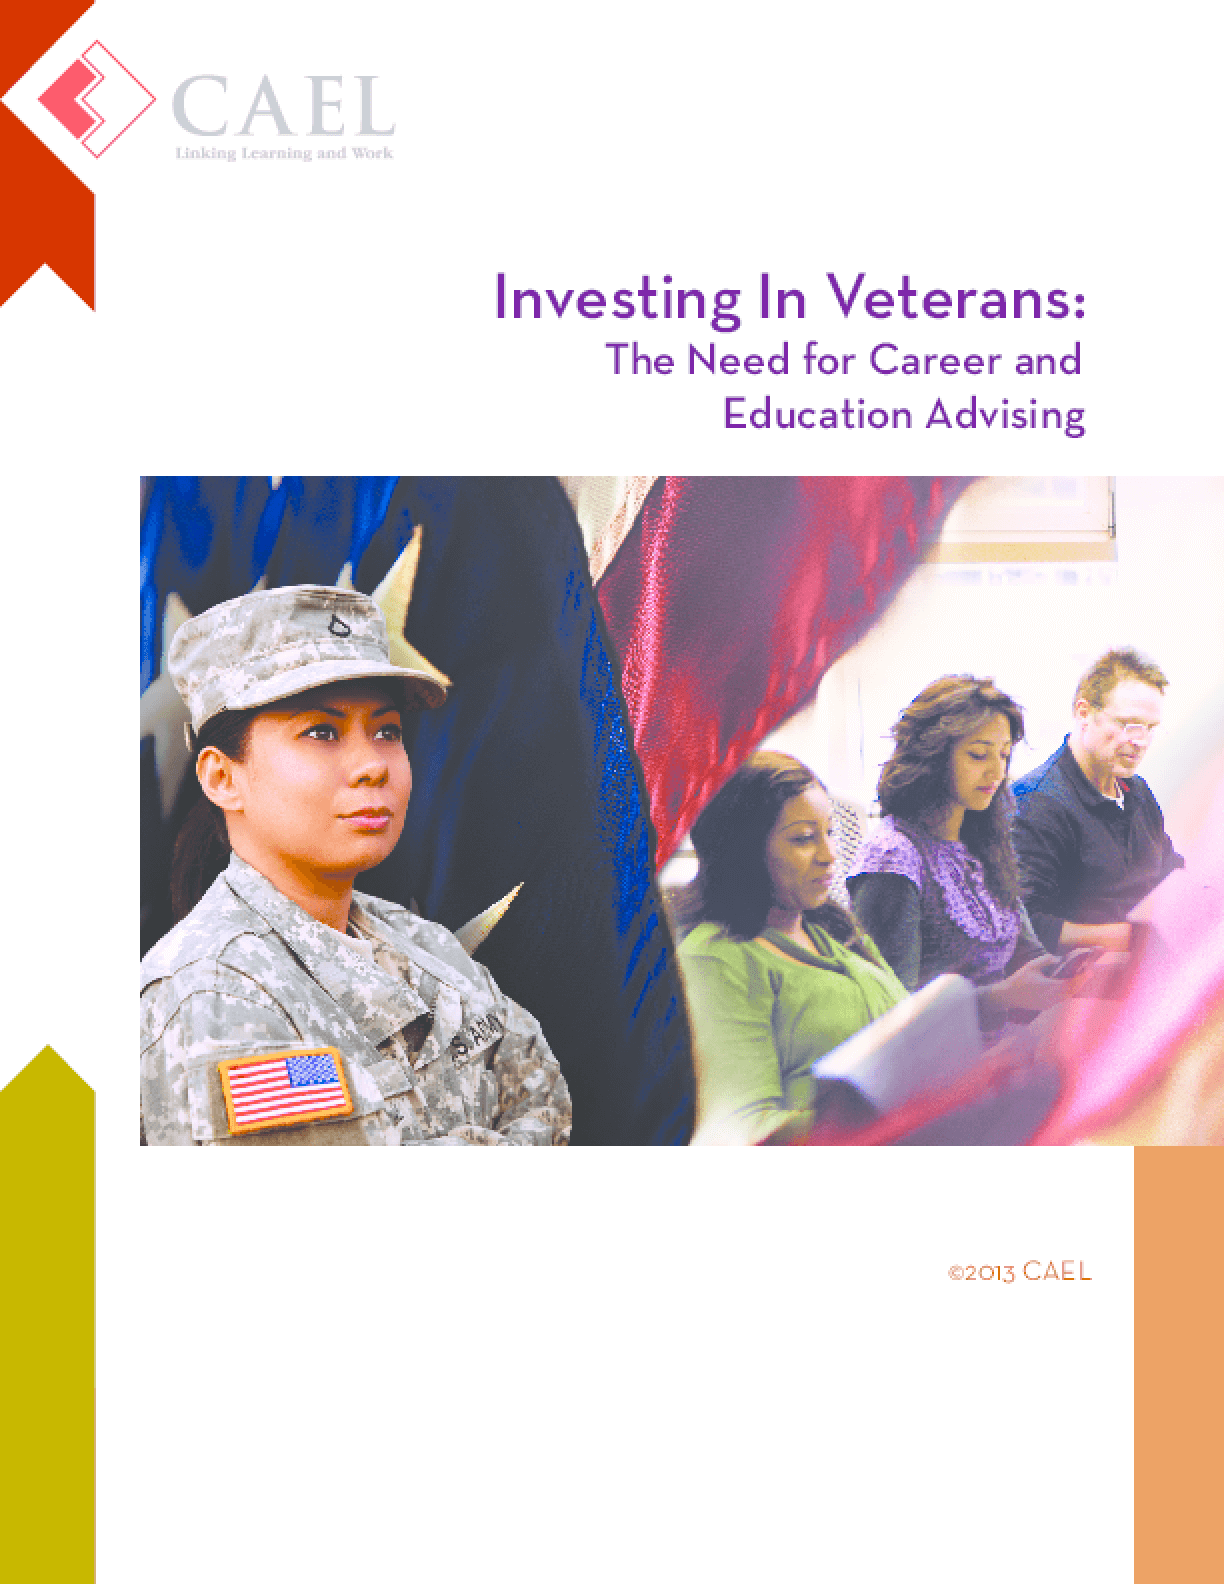 Investing In Veterans: The Need for Career and Education Advising